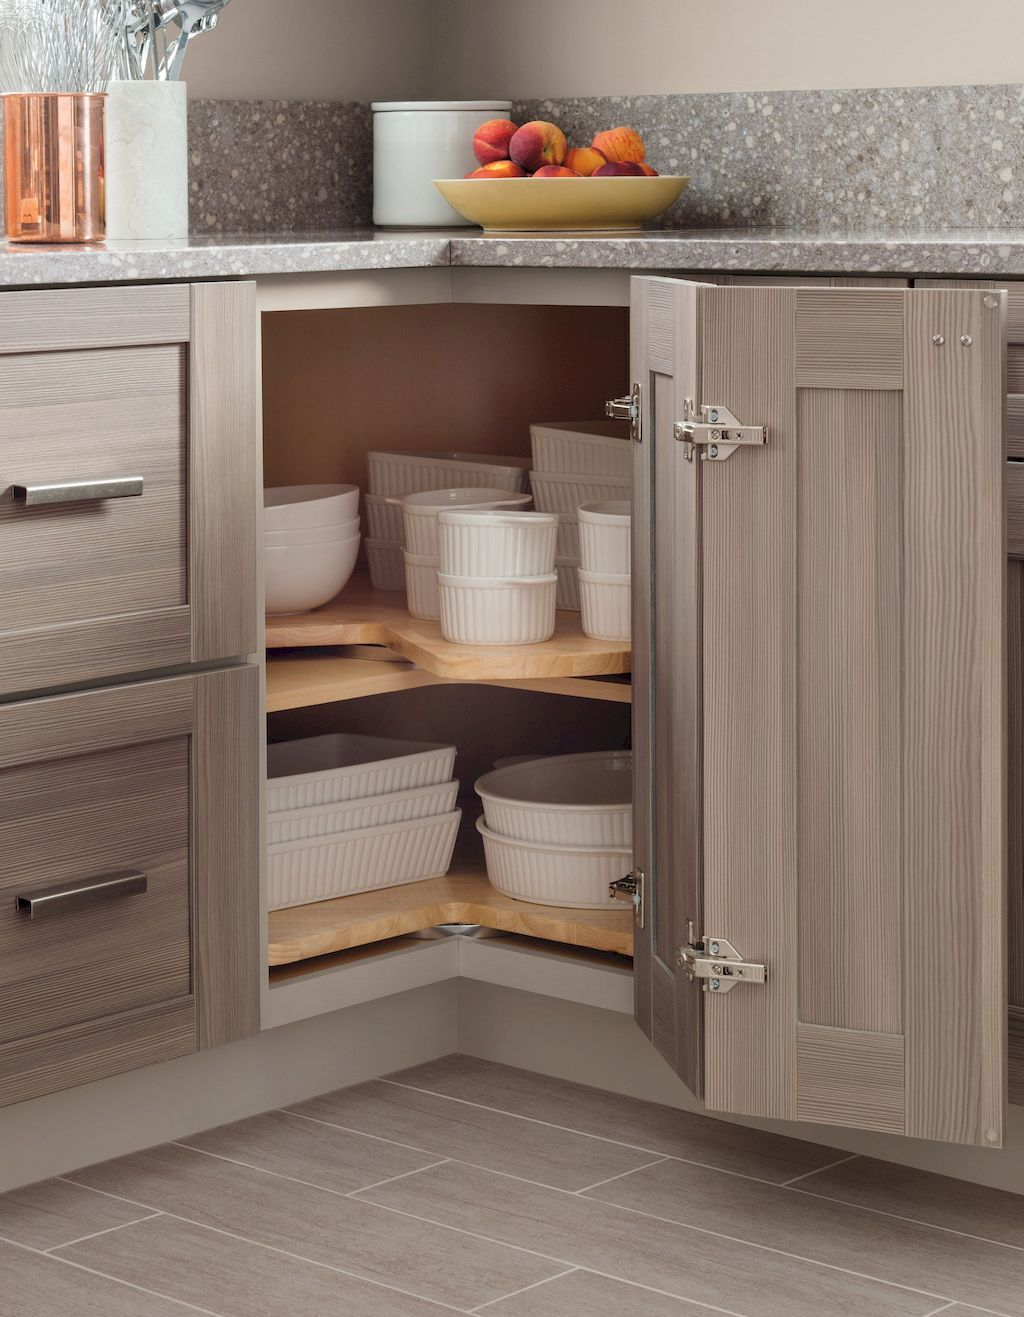 Choose Best Color For Small Kitchen Remodel In 2020 Corner Kitchen Cabinet Kitchen Cabinet Design New Kitchen Cabinets